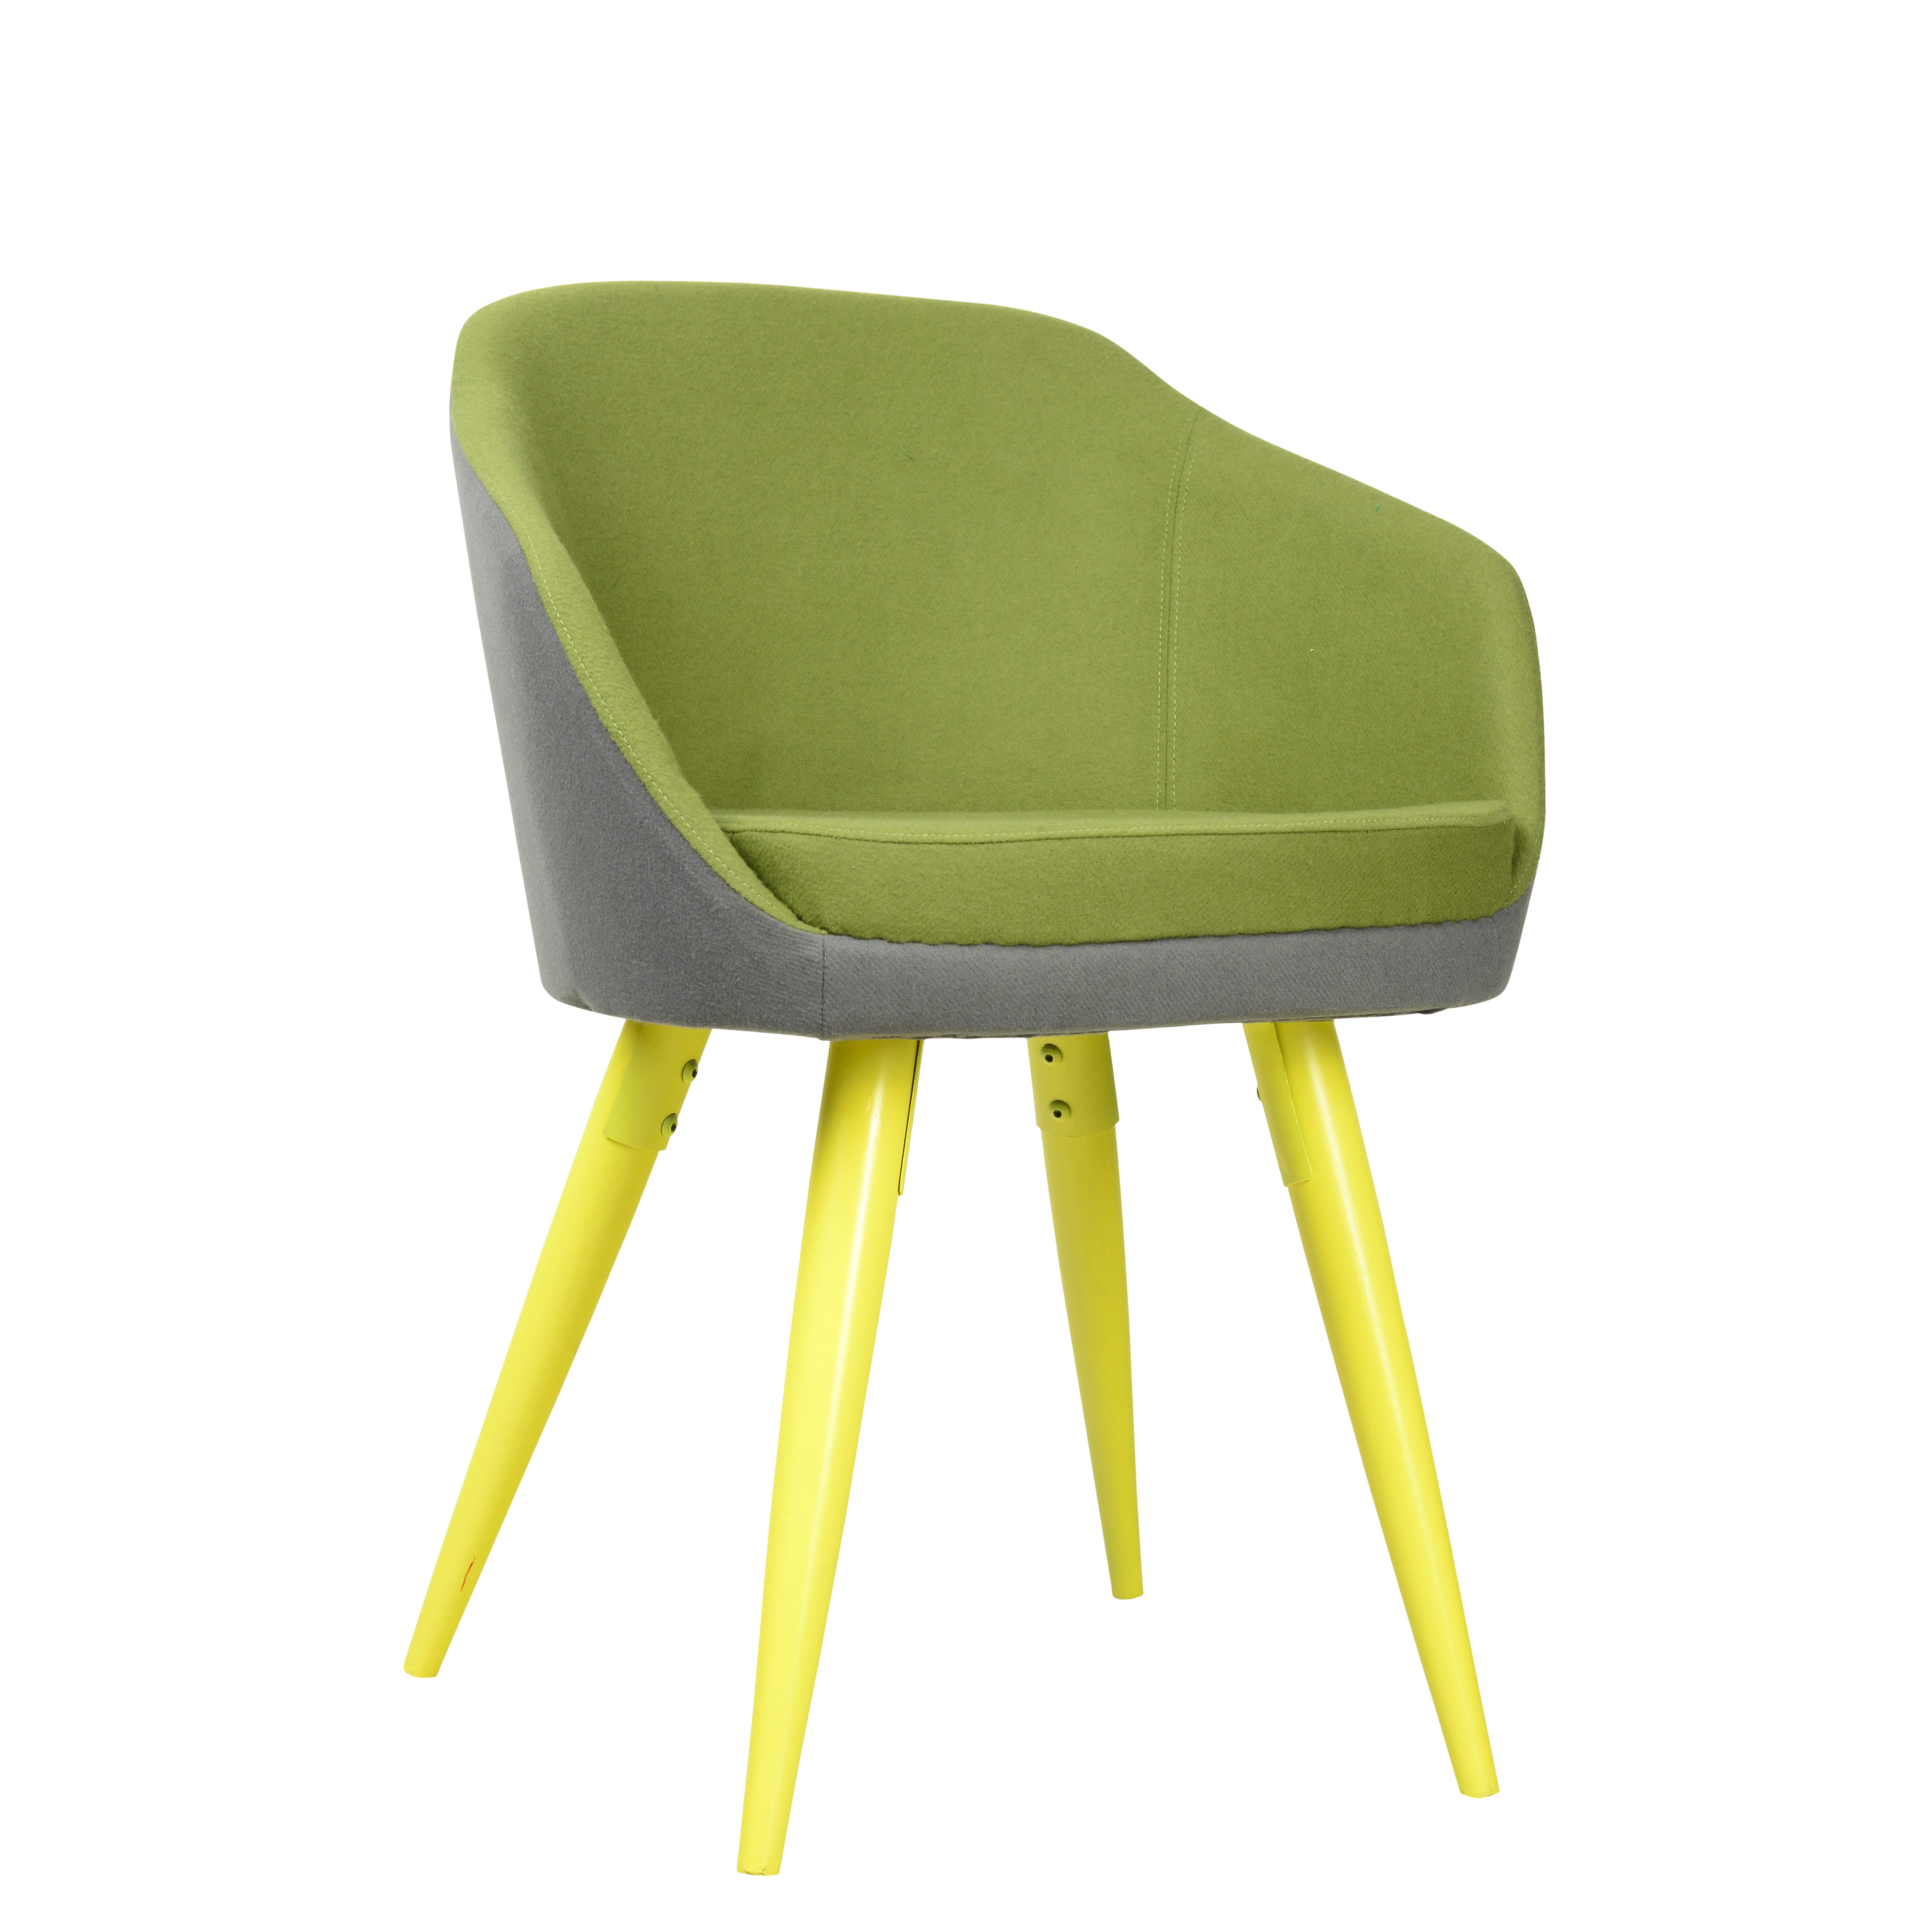 Lily lounge chair